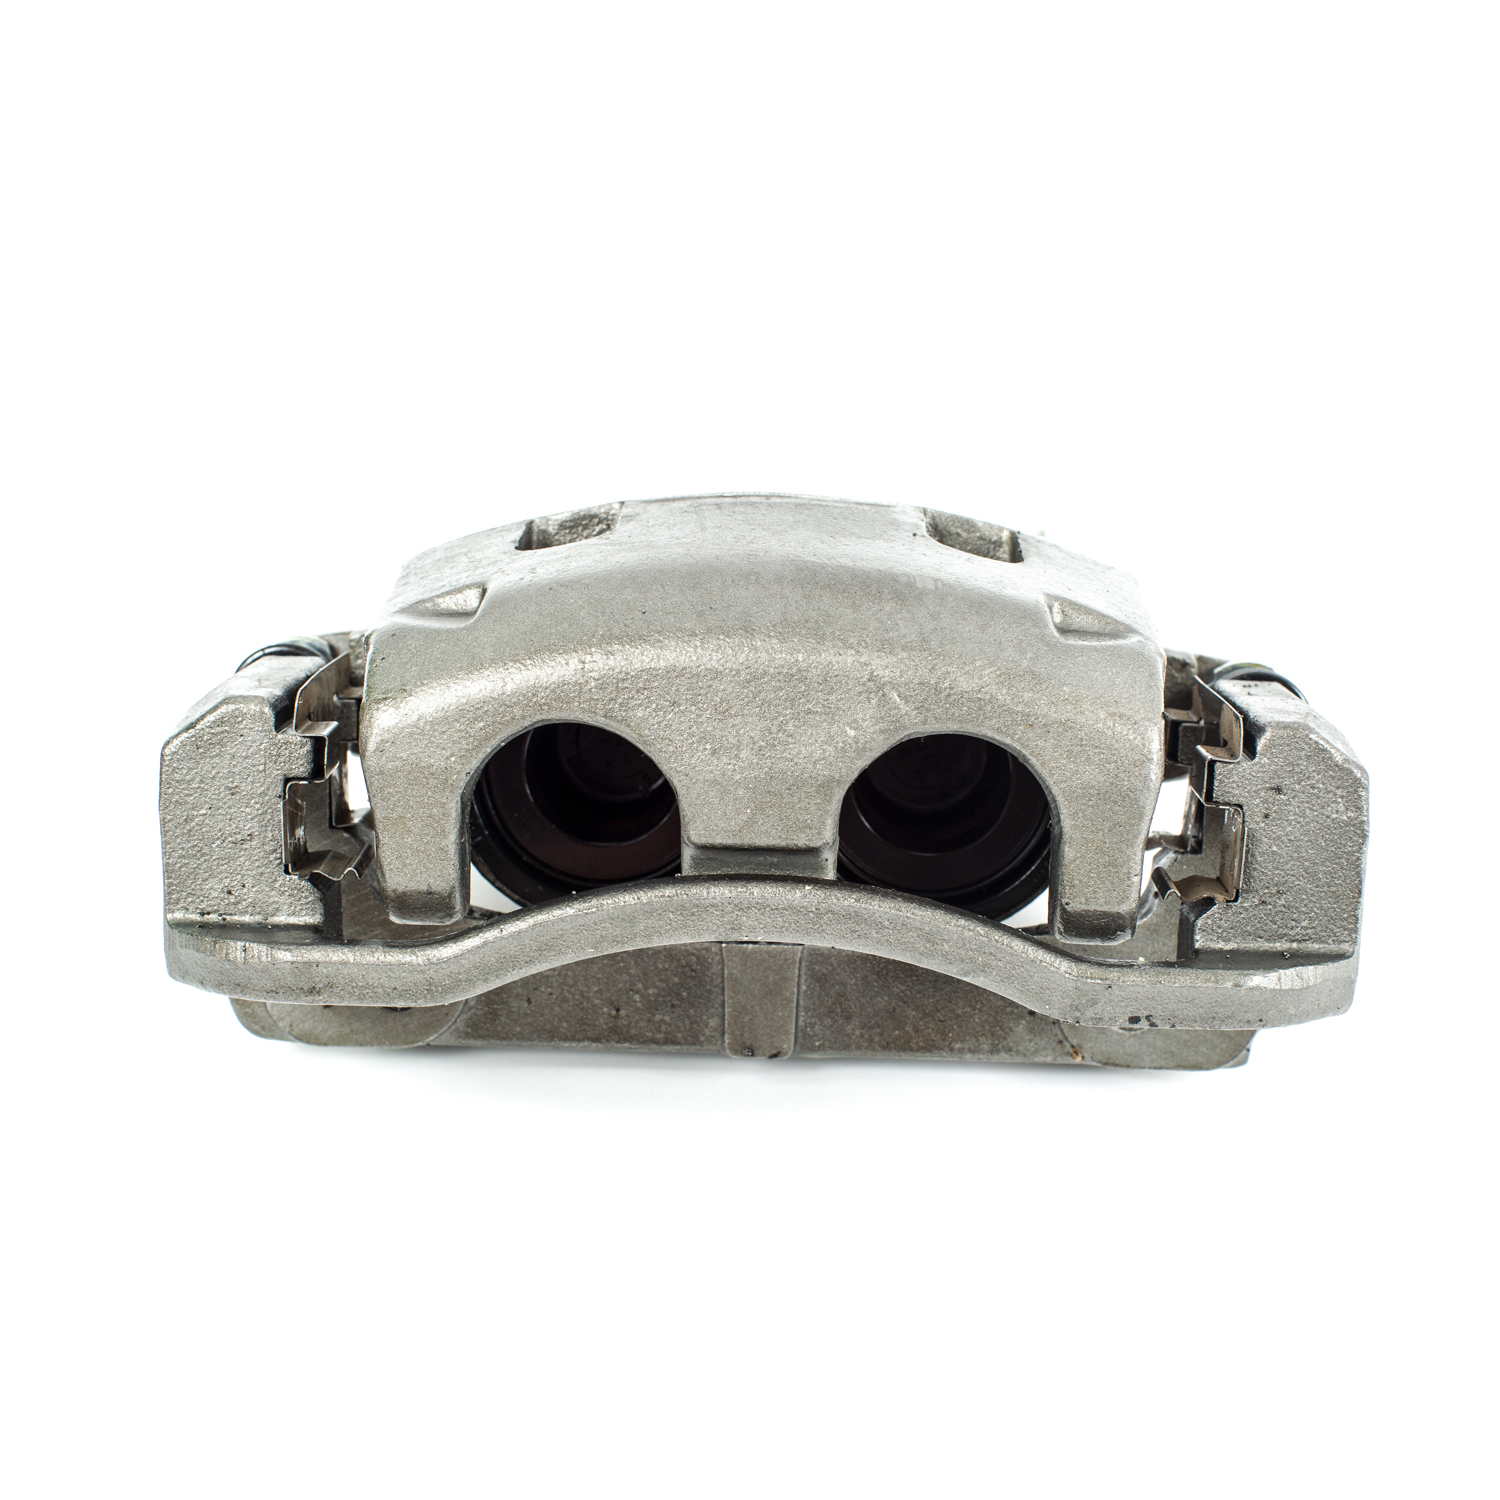 How to tell how many pistons are in vehicle's brake calipers